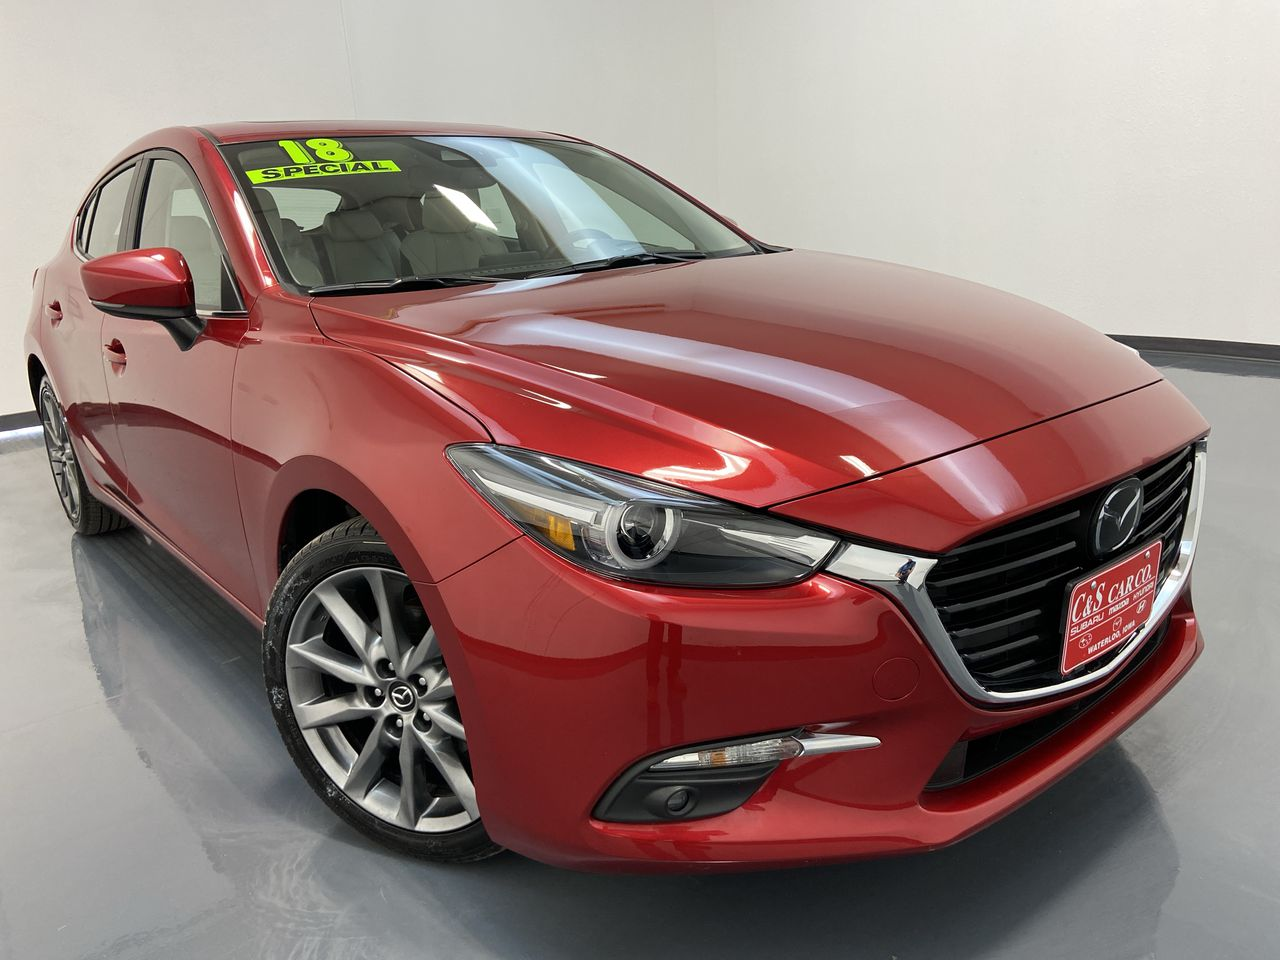 2018 Mazda MAZDA3 5-Door 4D Hatchback 6sp  - MA3373A  - C & S Car Company